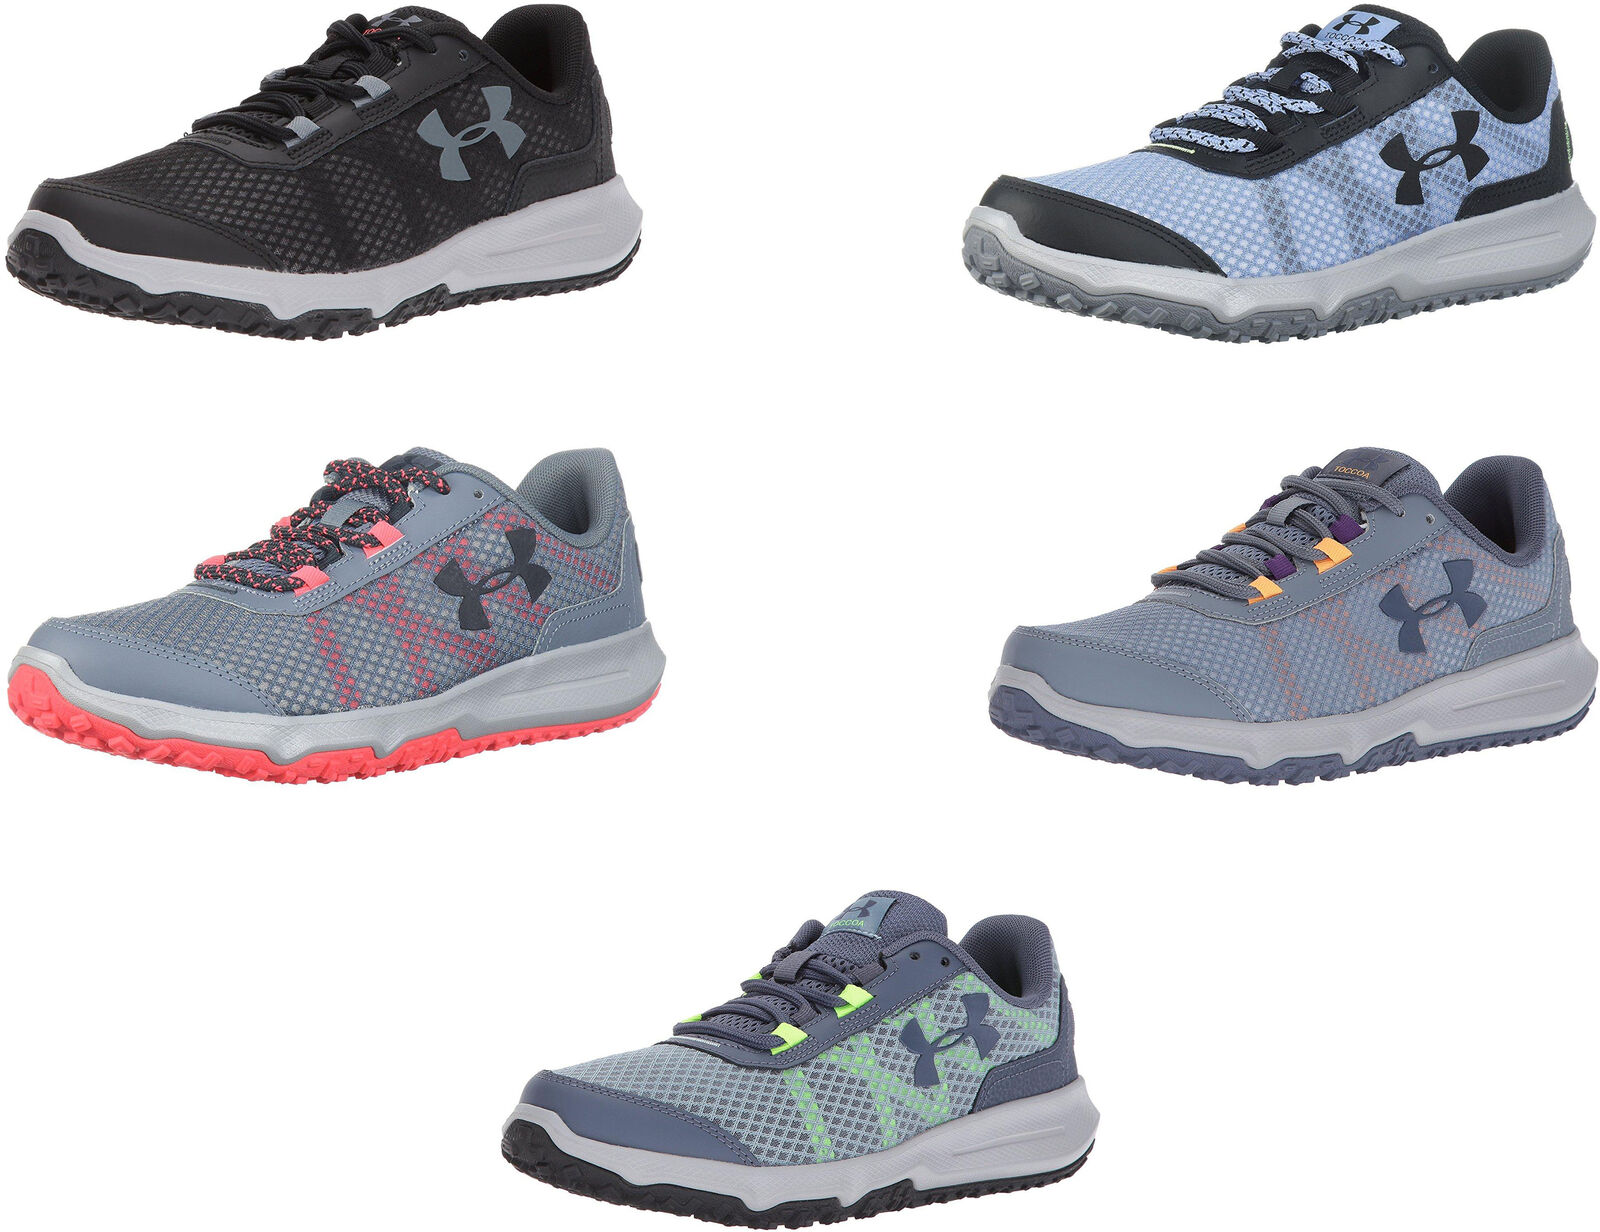 Under Armour Women's Toccoa Shoes, 5 Colors